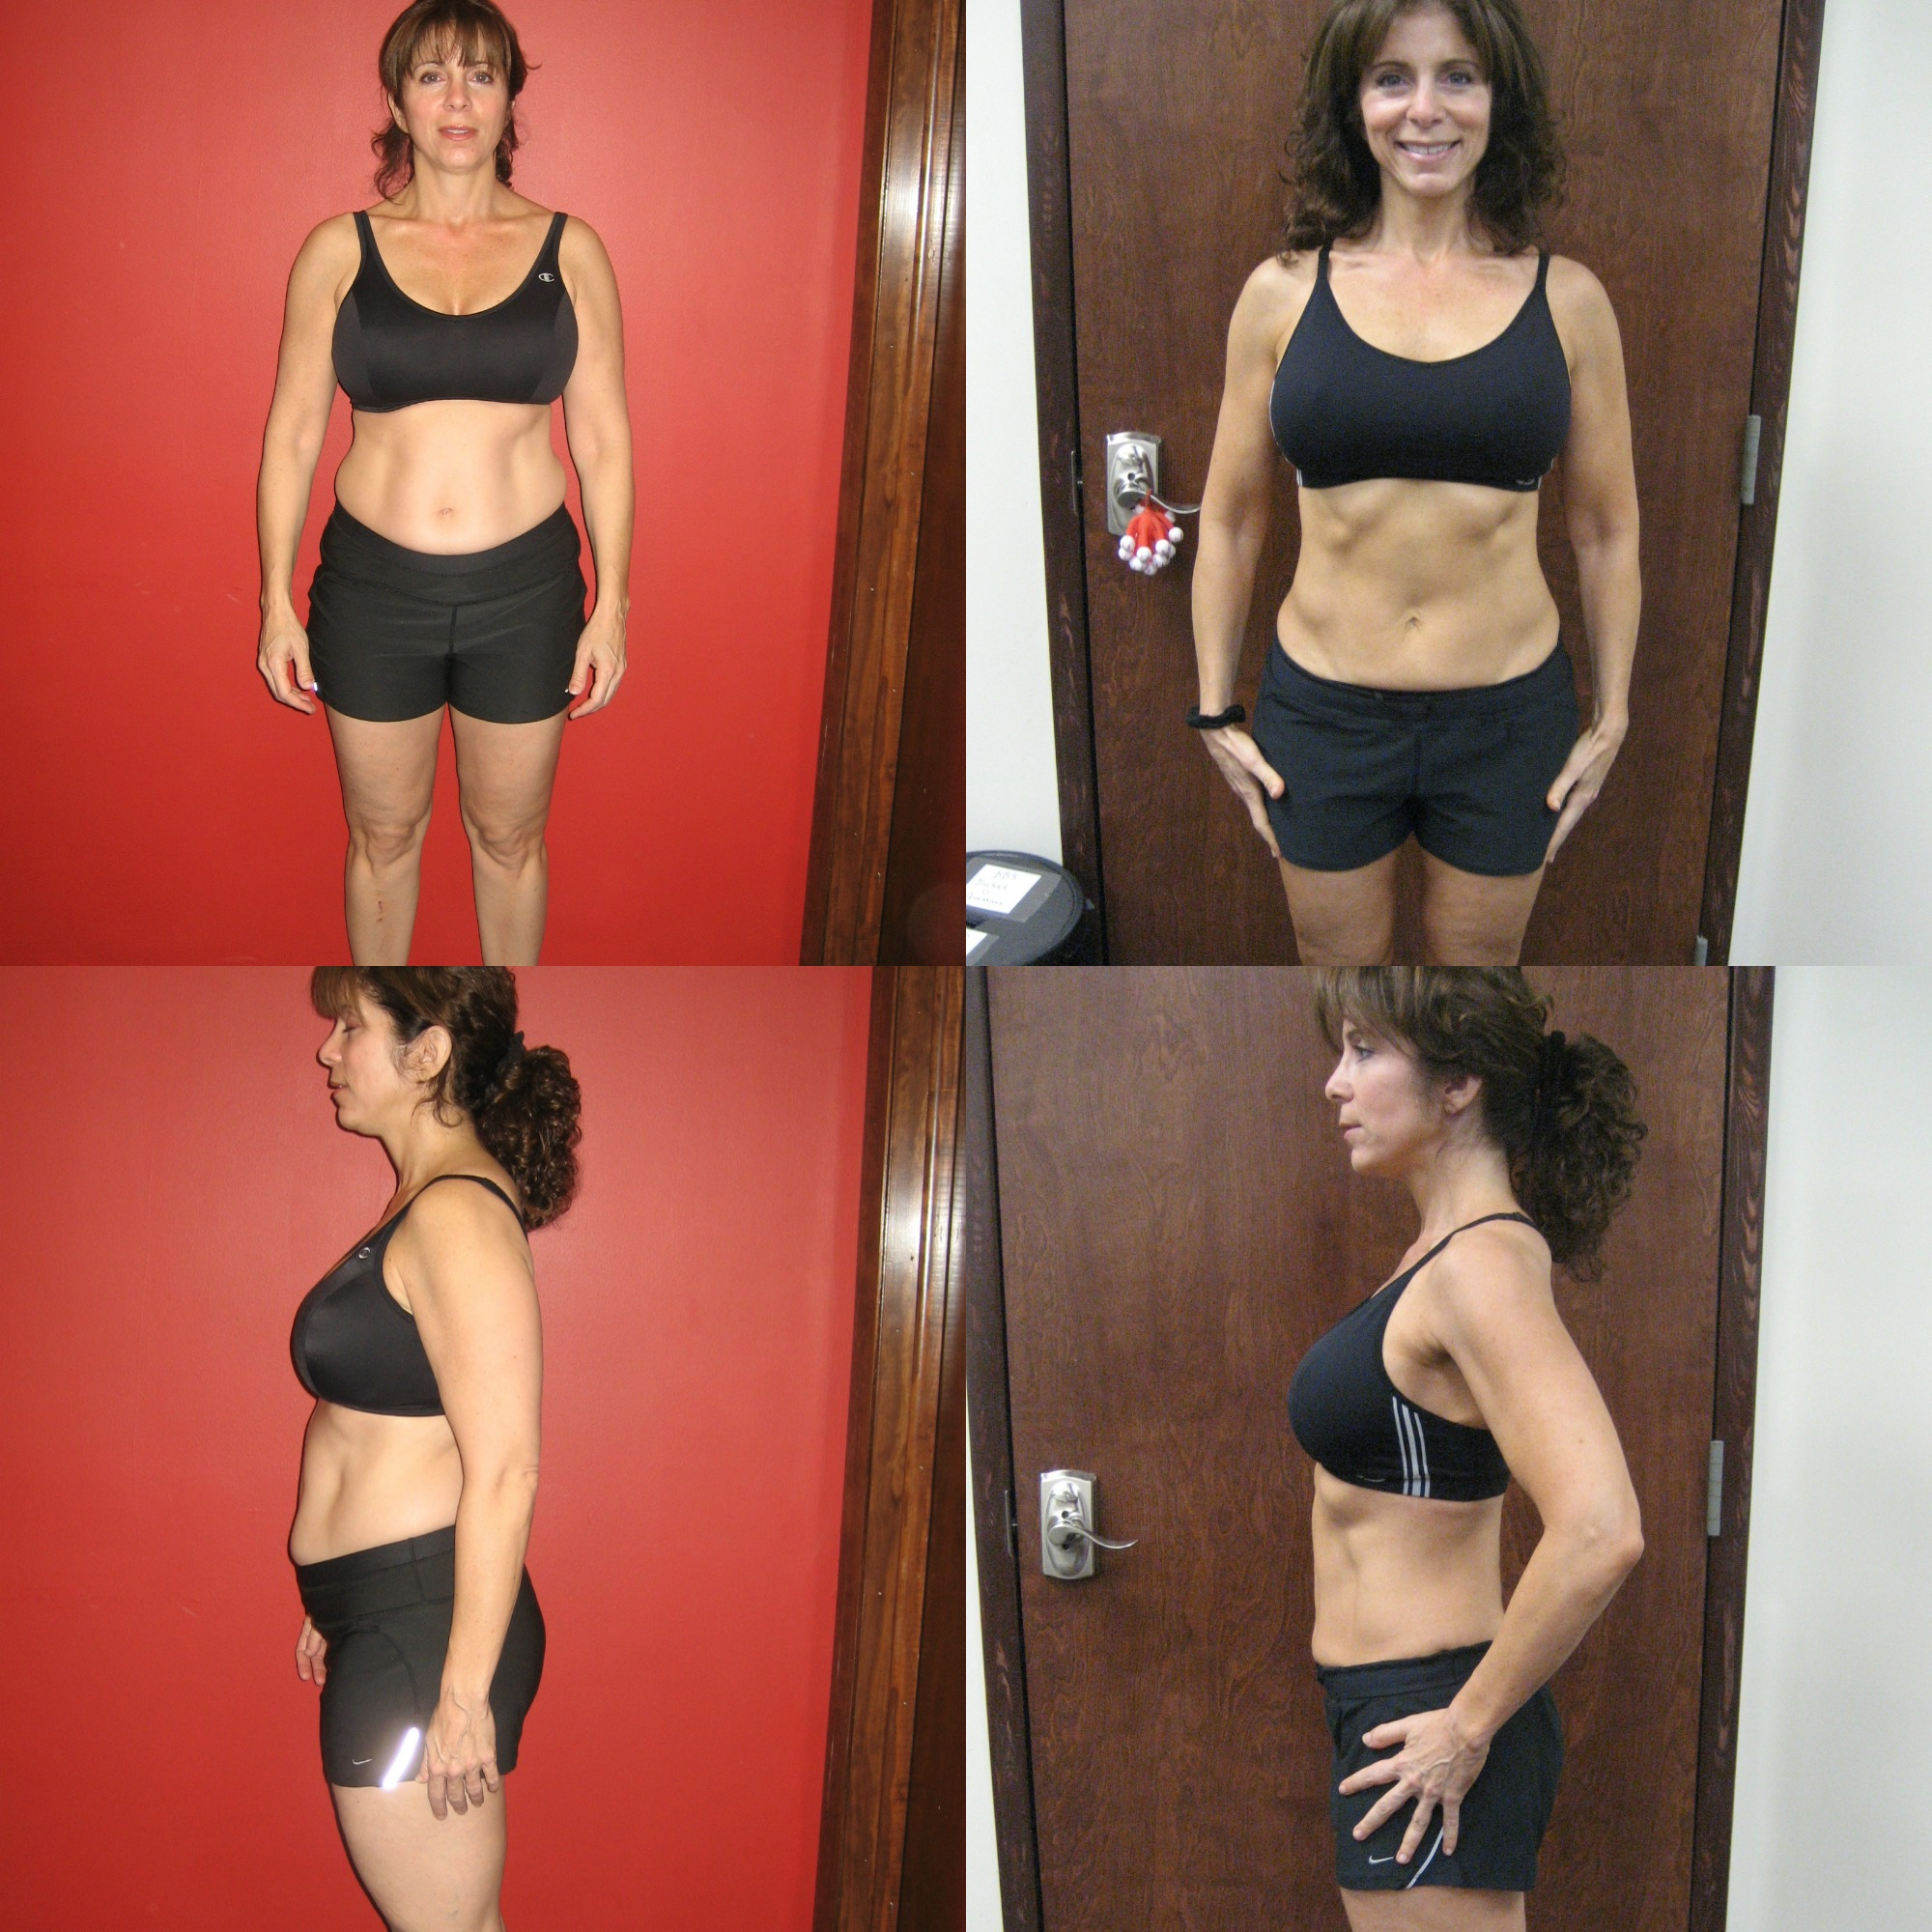 How to reduce body fat percentage and gain muscle